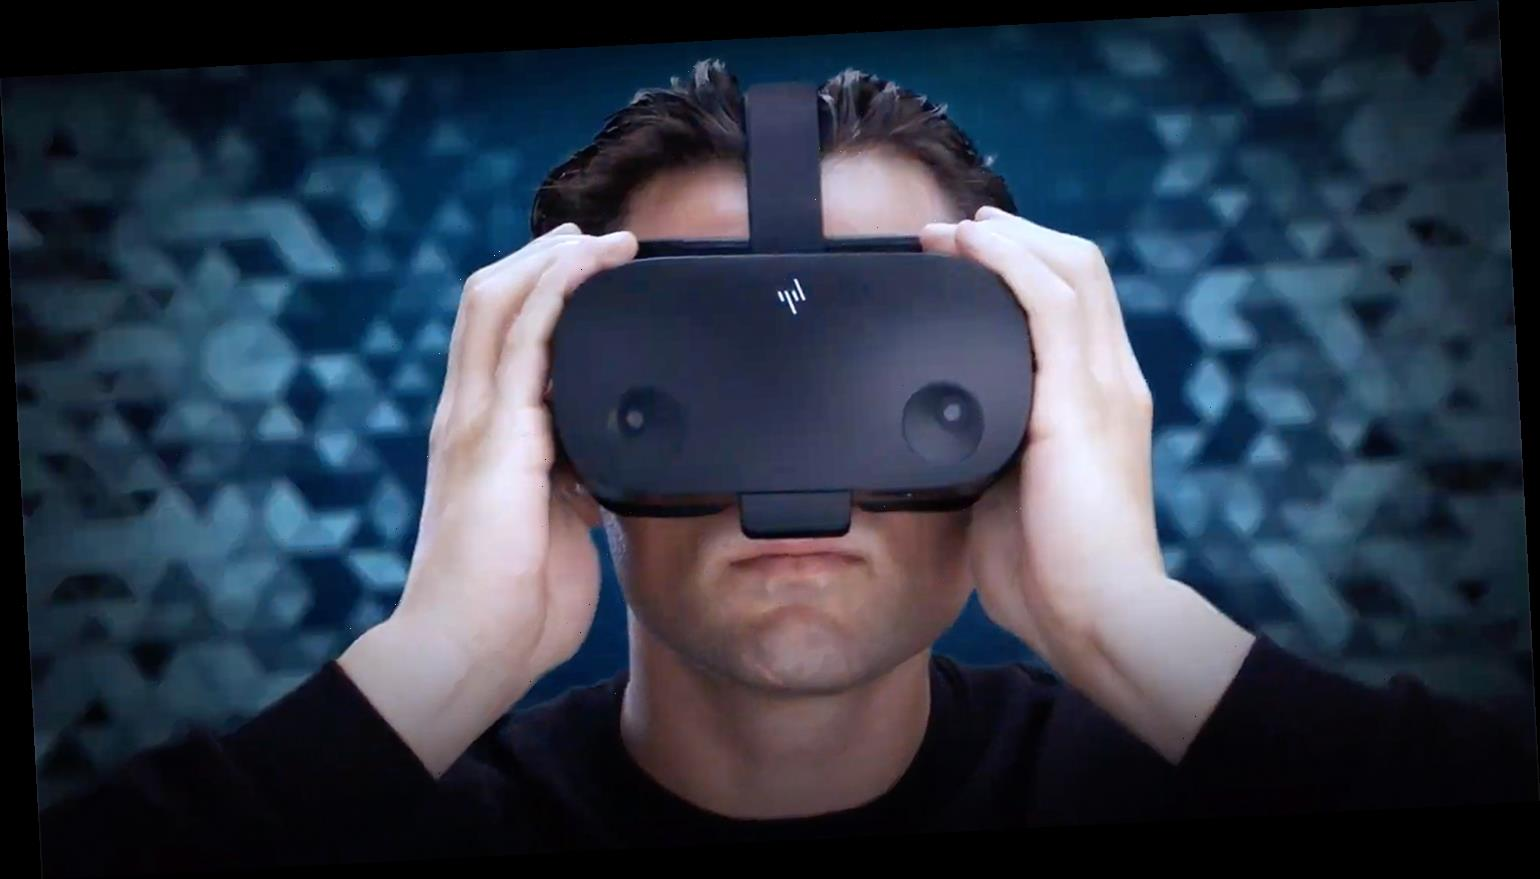 Infinity Festival Goes Virtual to Bring Filmmakers and Industry Innovators Together